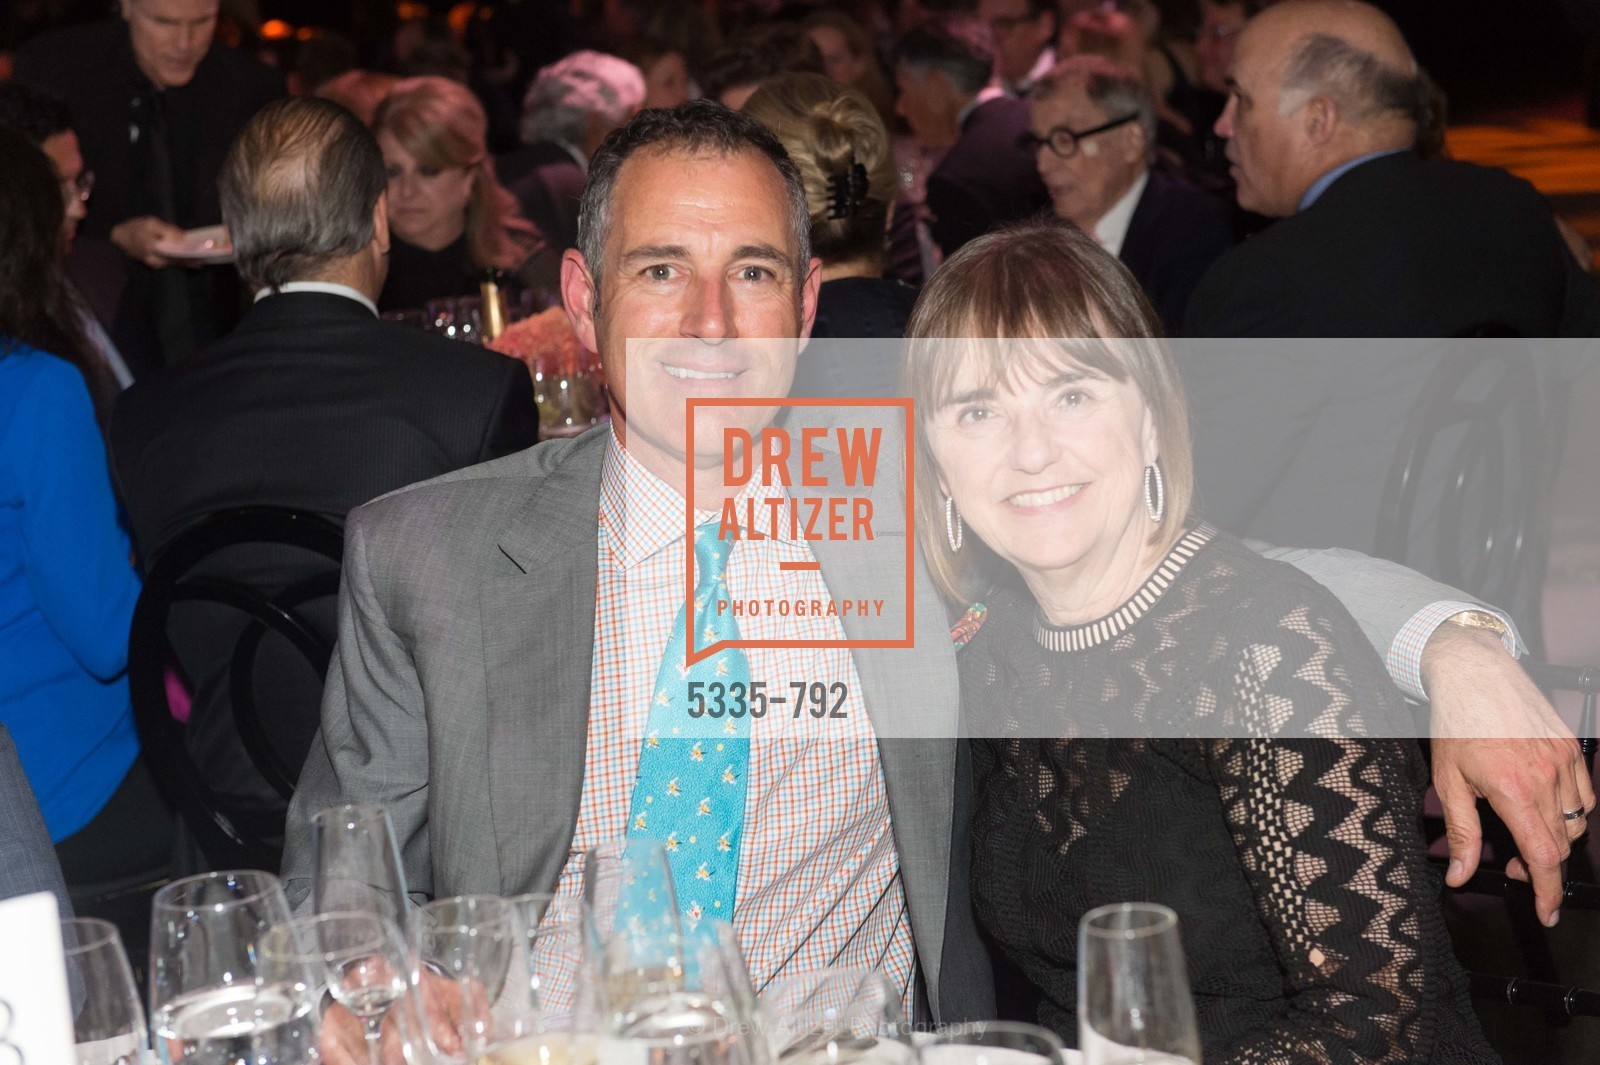 John Caruso, Sharon Meresman, MEALS ON WHEELS OF SAN FRANCISCO'S 28th Annual Star Chefs and Vintners Gala, US, April 19th, 2015,Drew Altizer, Drew Altizer Photography, full-service agency, private events, San Francisco photographer, photographer california